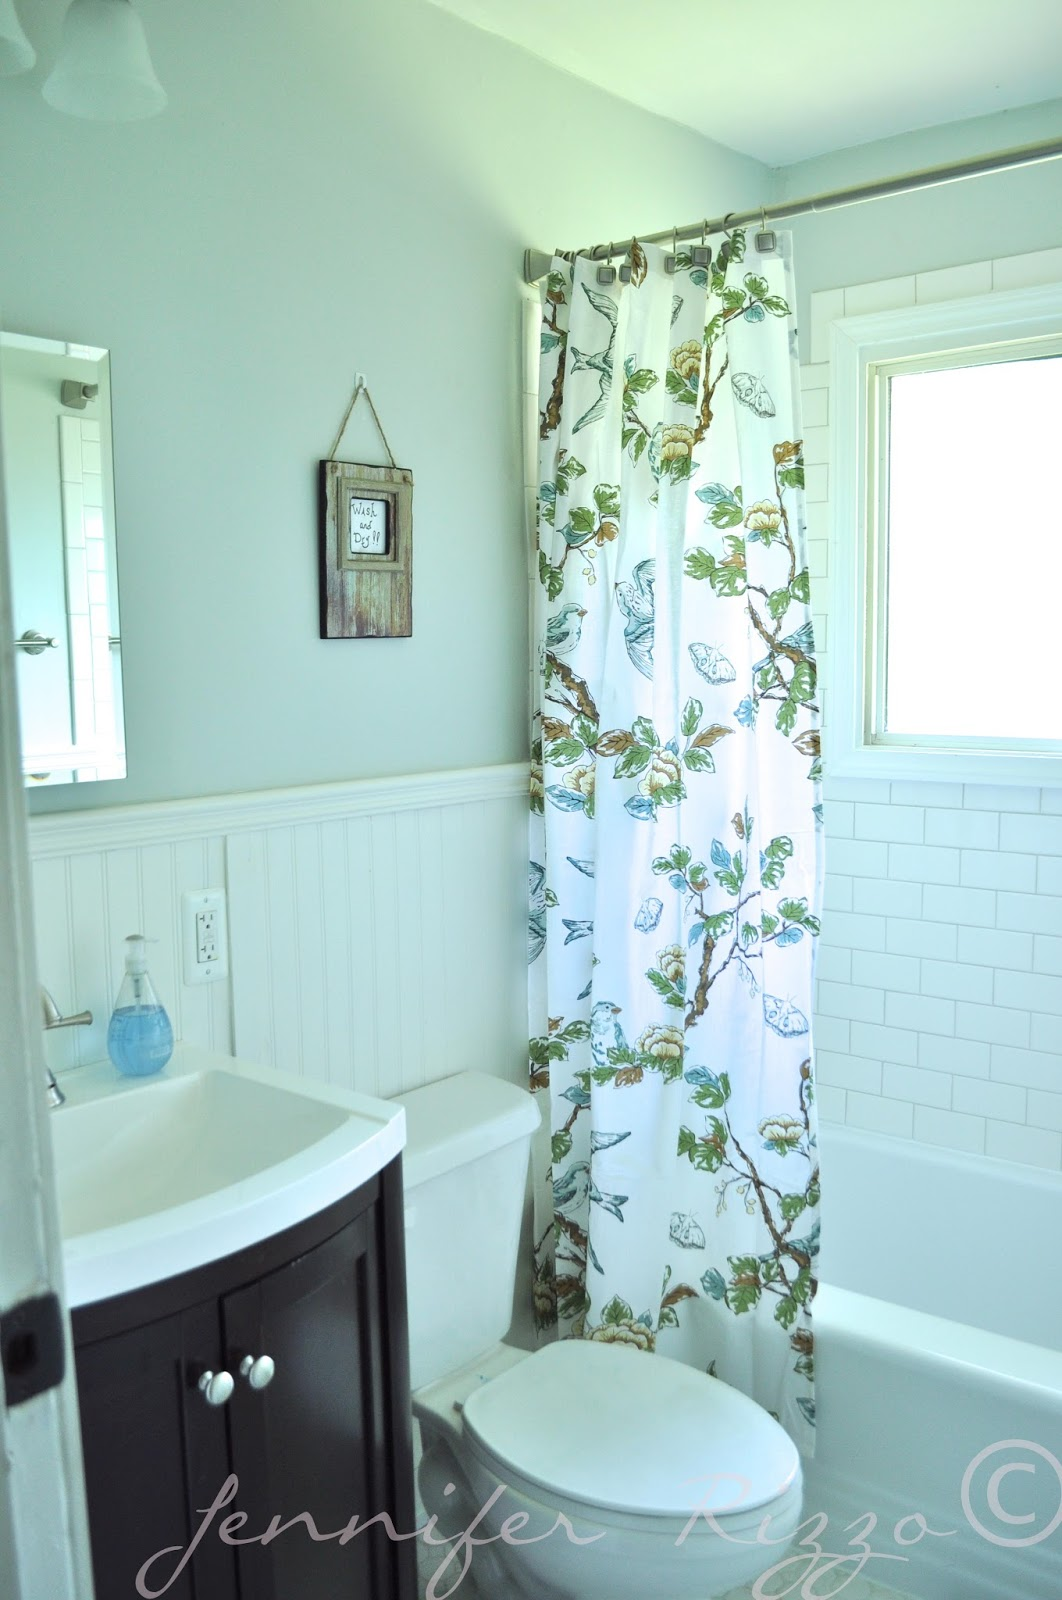 32 great ideas and pictures of plastic bathroom tiles on Bathroom Tile Pattern Design  id=19147